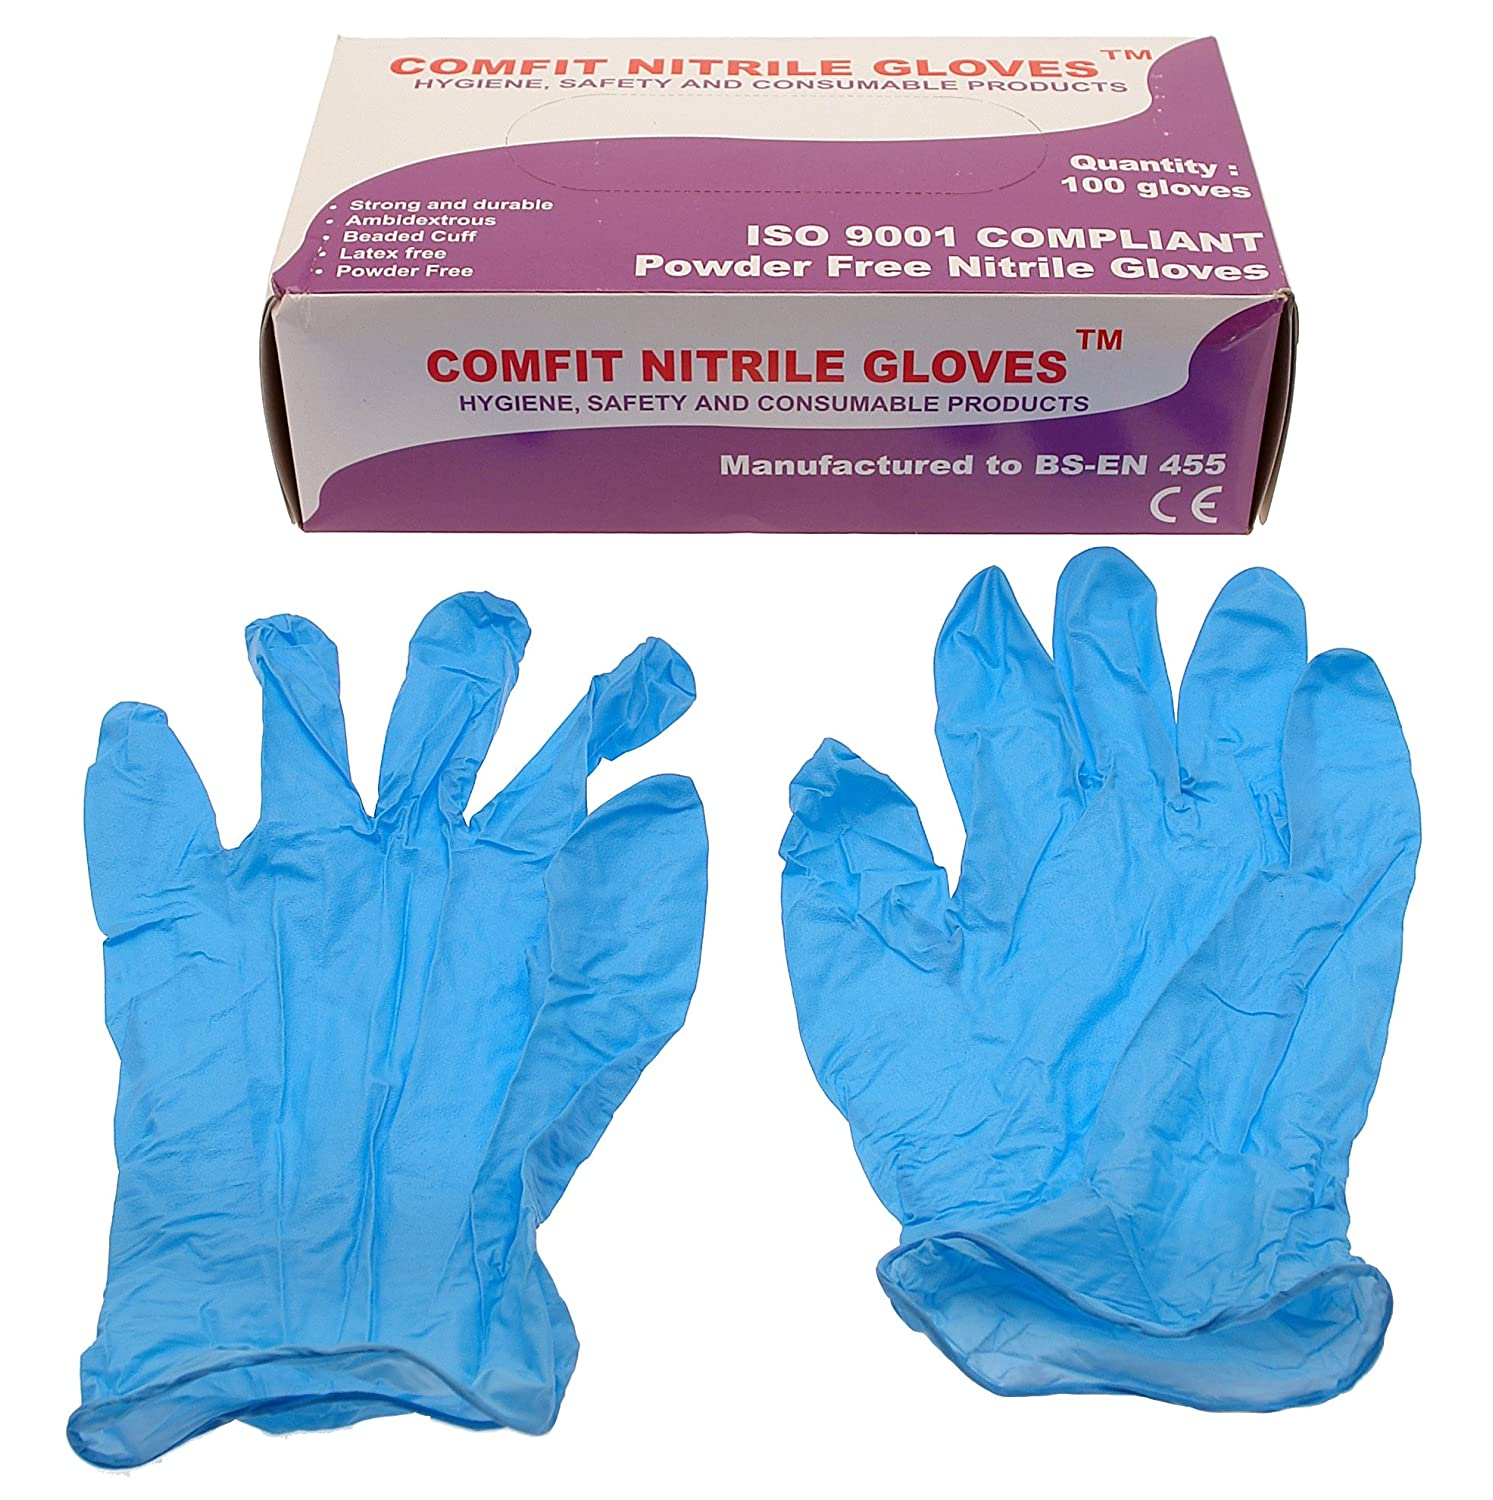 Saville NG201FXL Nitrile Powder Free Disposable Gloves - X-Large